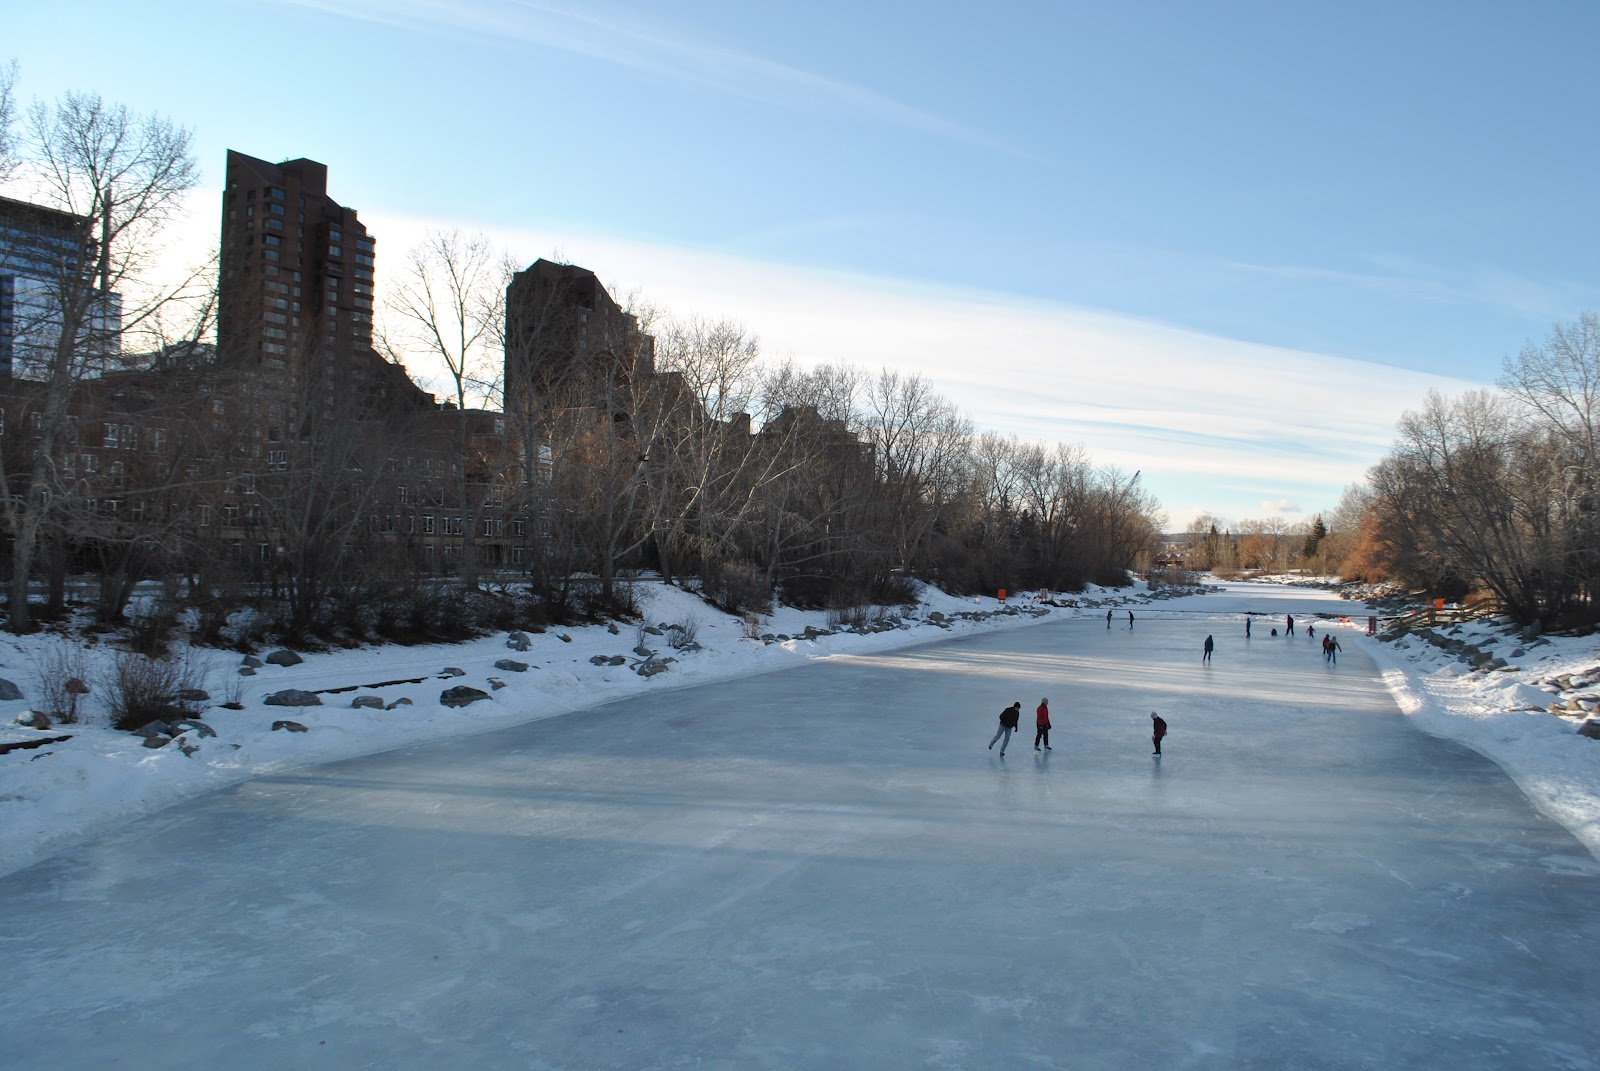 Ice skating in Prince's Island Park